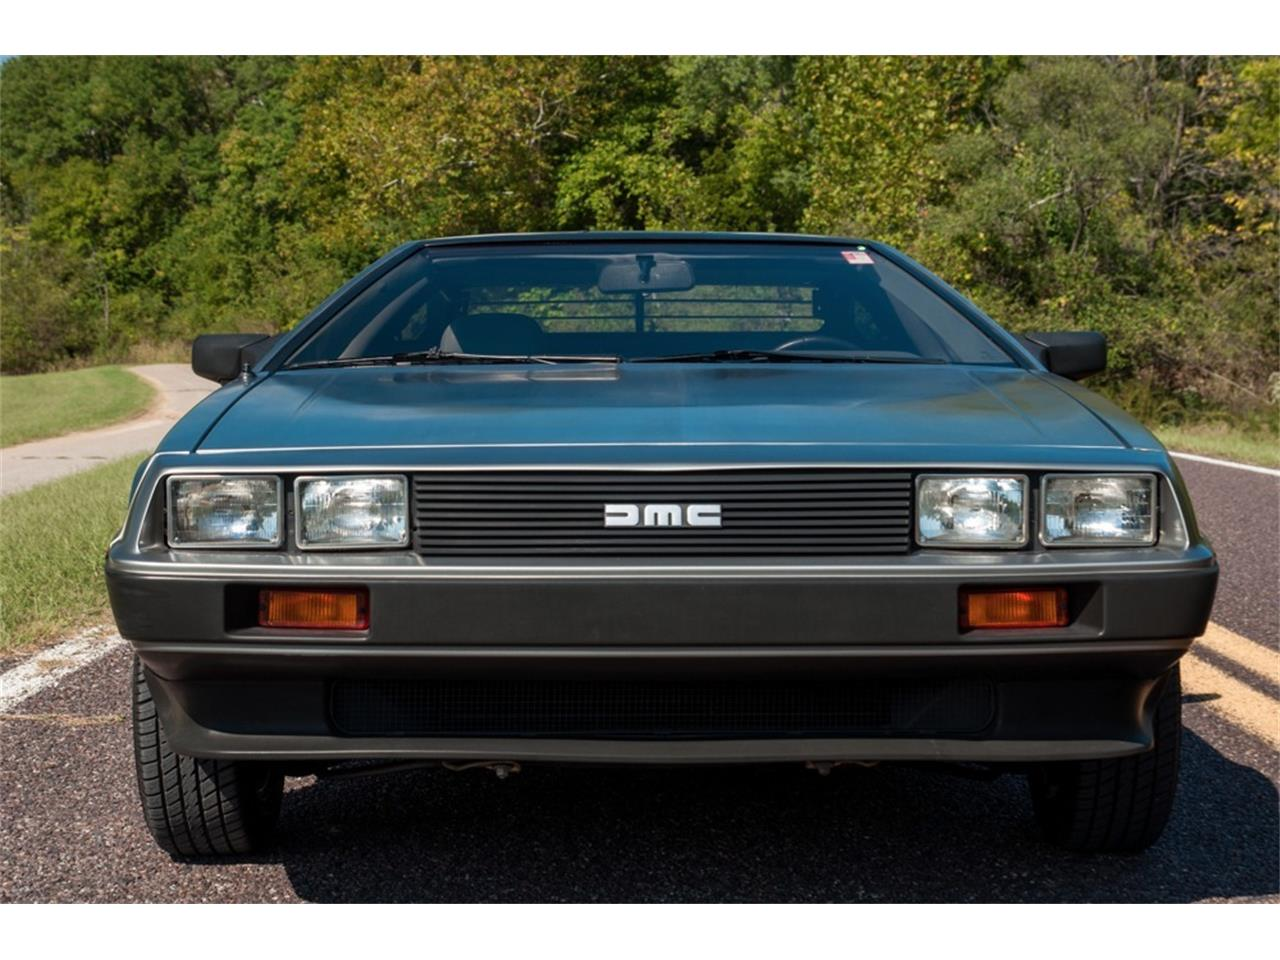 Large Picture of '81 DeLorean DMC-12 - $73,500.00 - JPXR